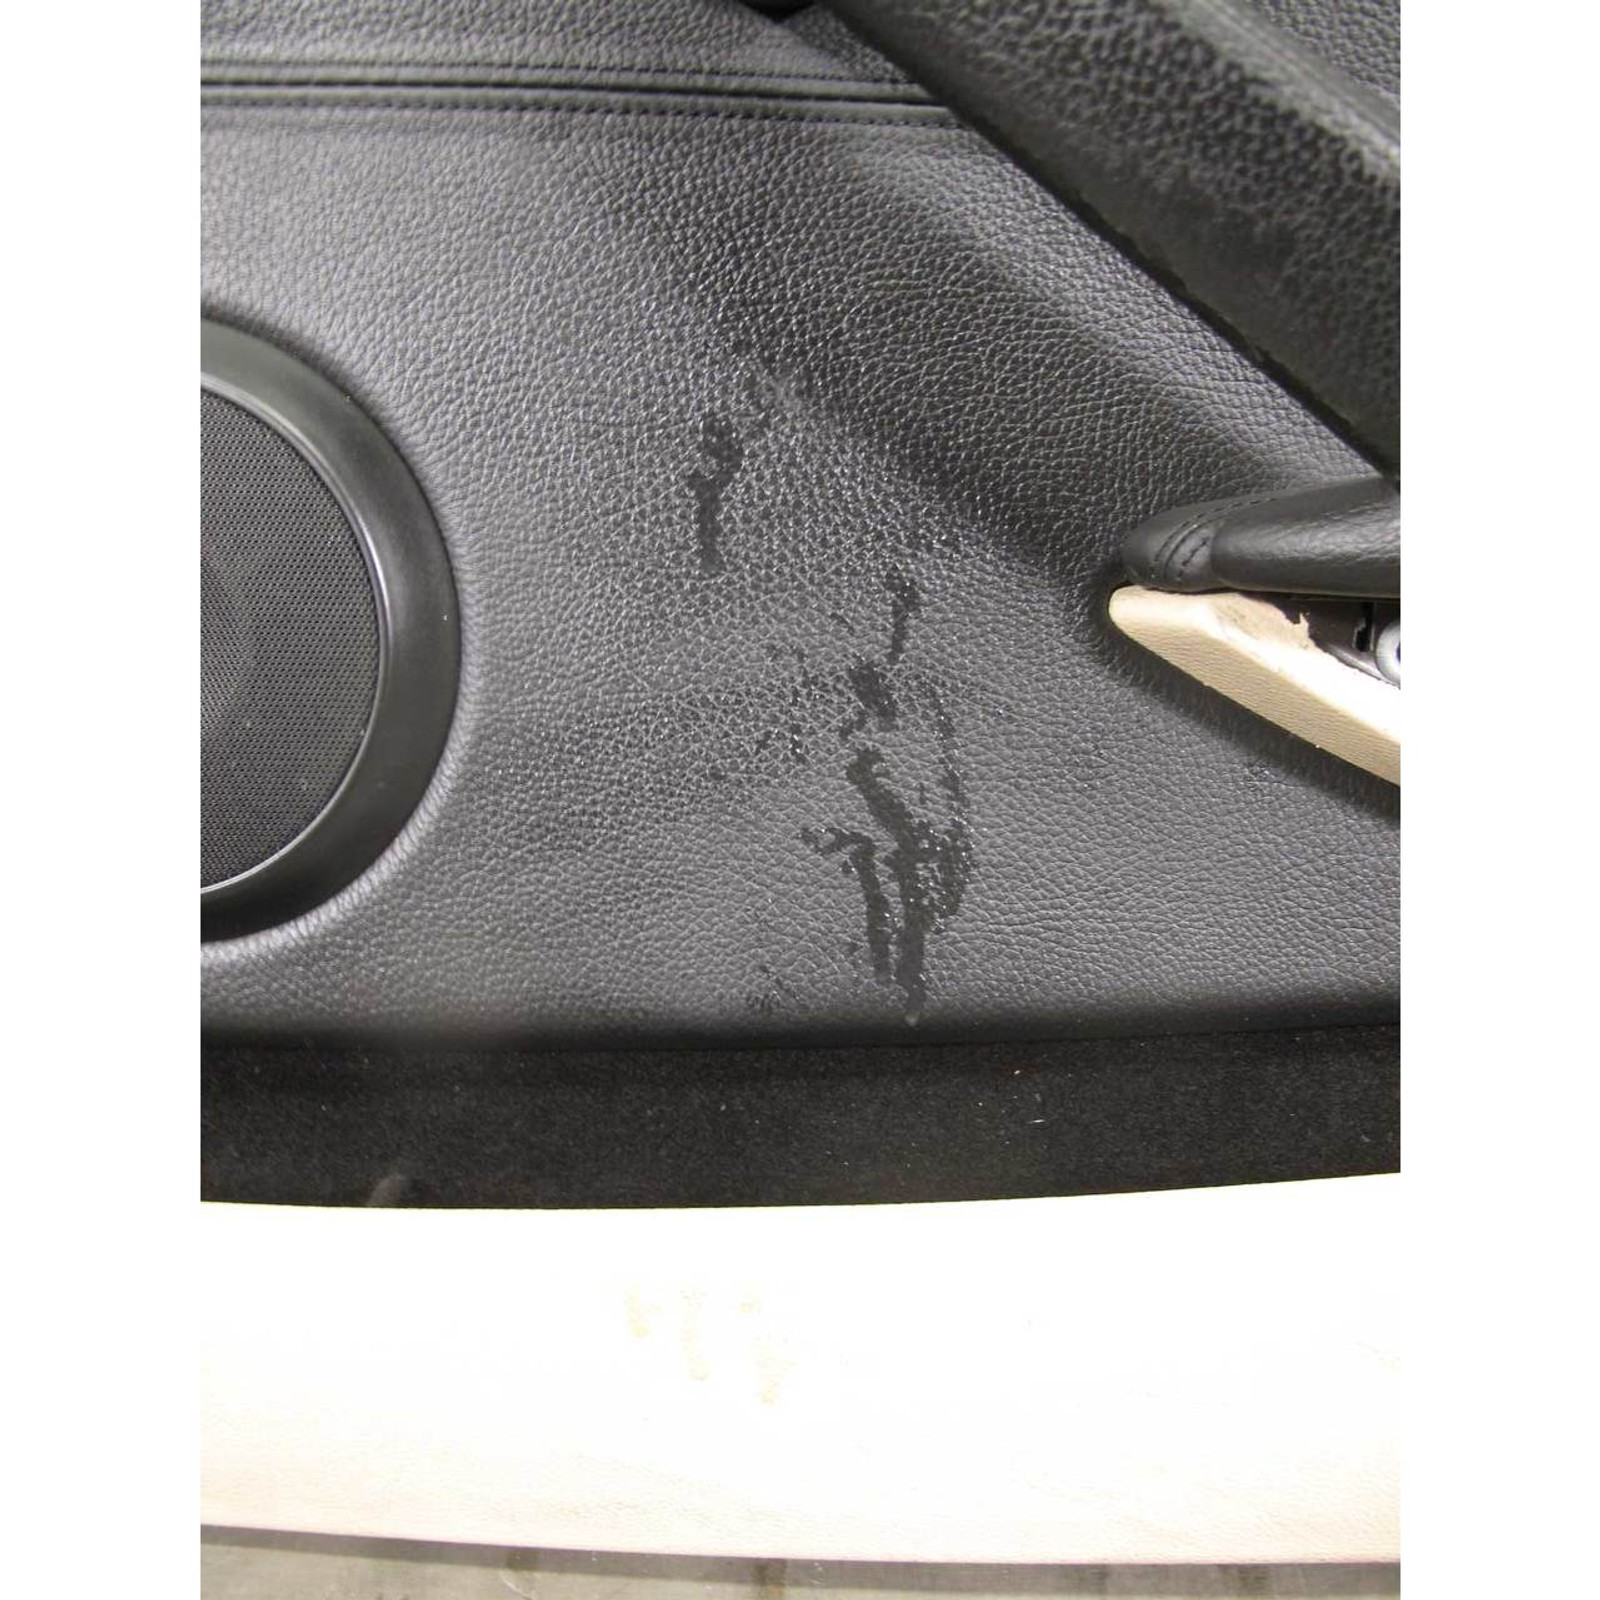 2008 2010 BMW E63 E64 6 Series Right Interior Door Panel Trim Skin